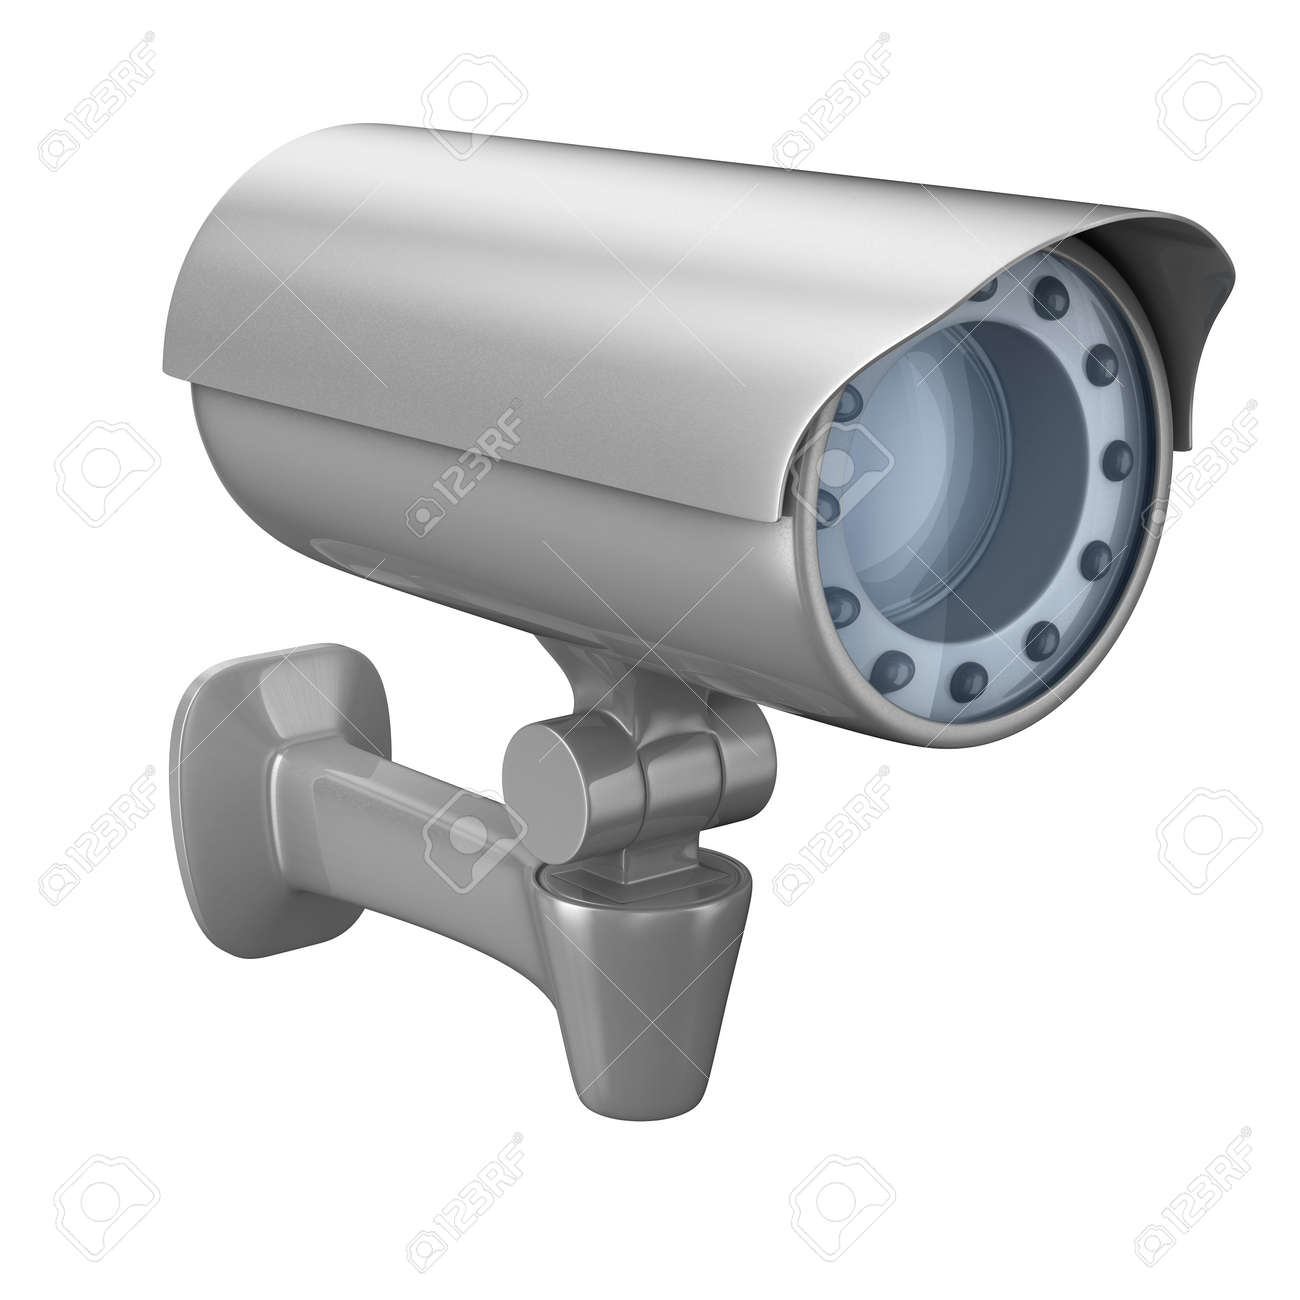 security camera on white background. Isolated 3D image Stock Photo - 6749136